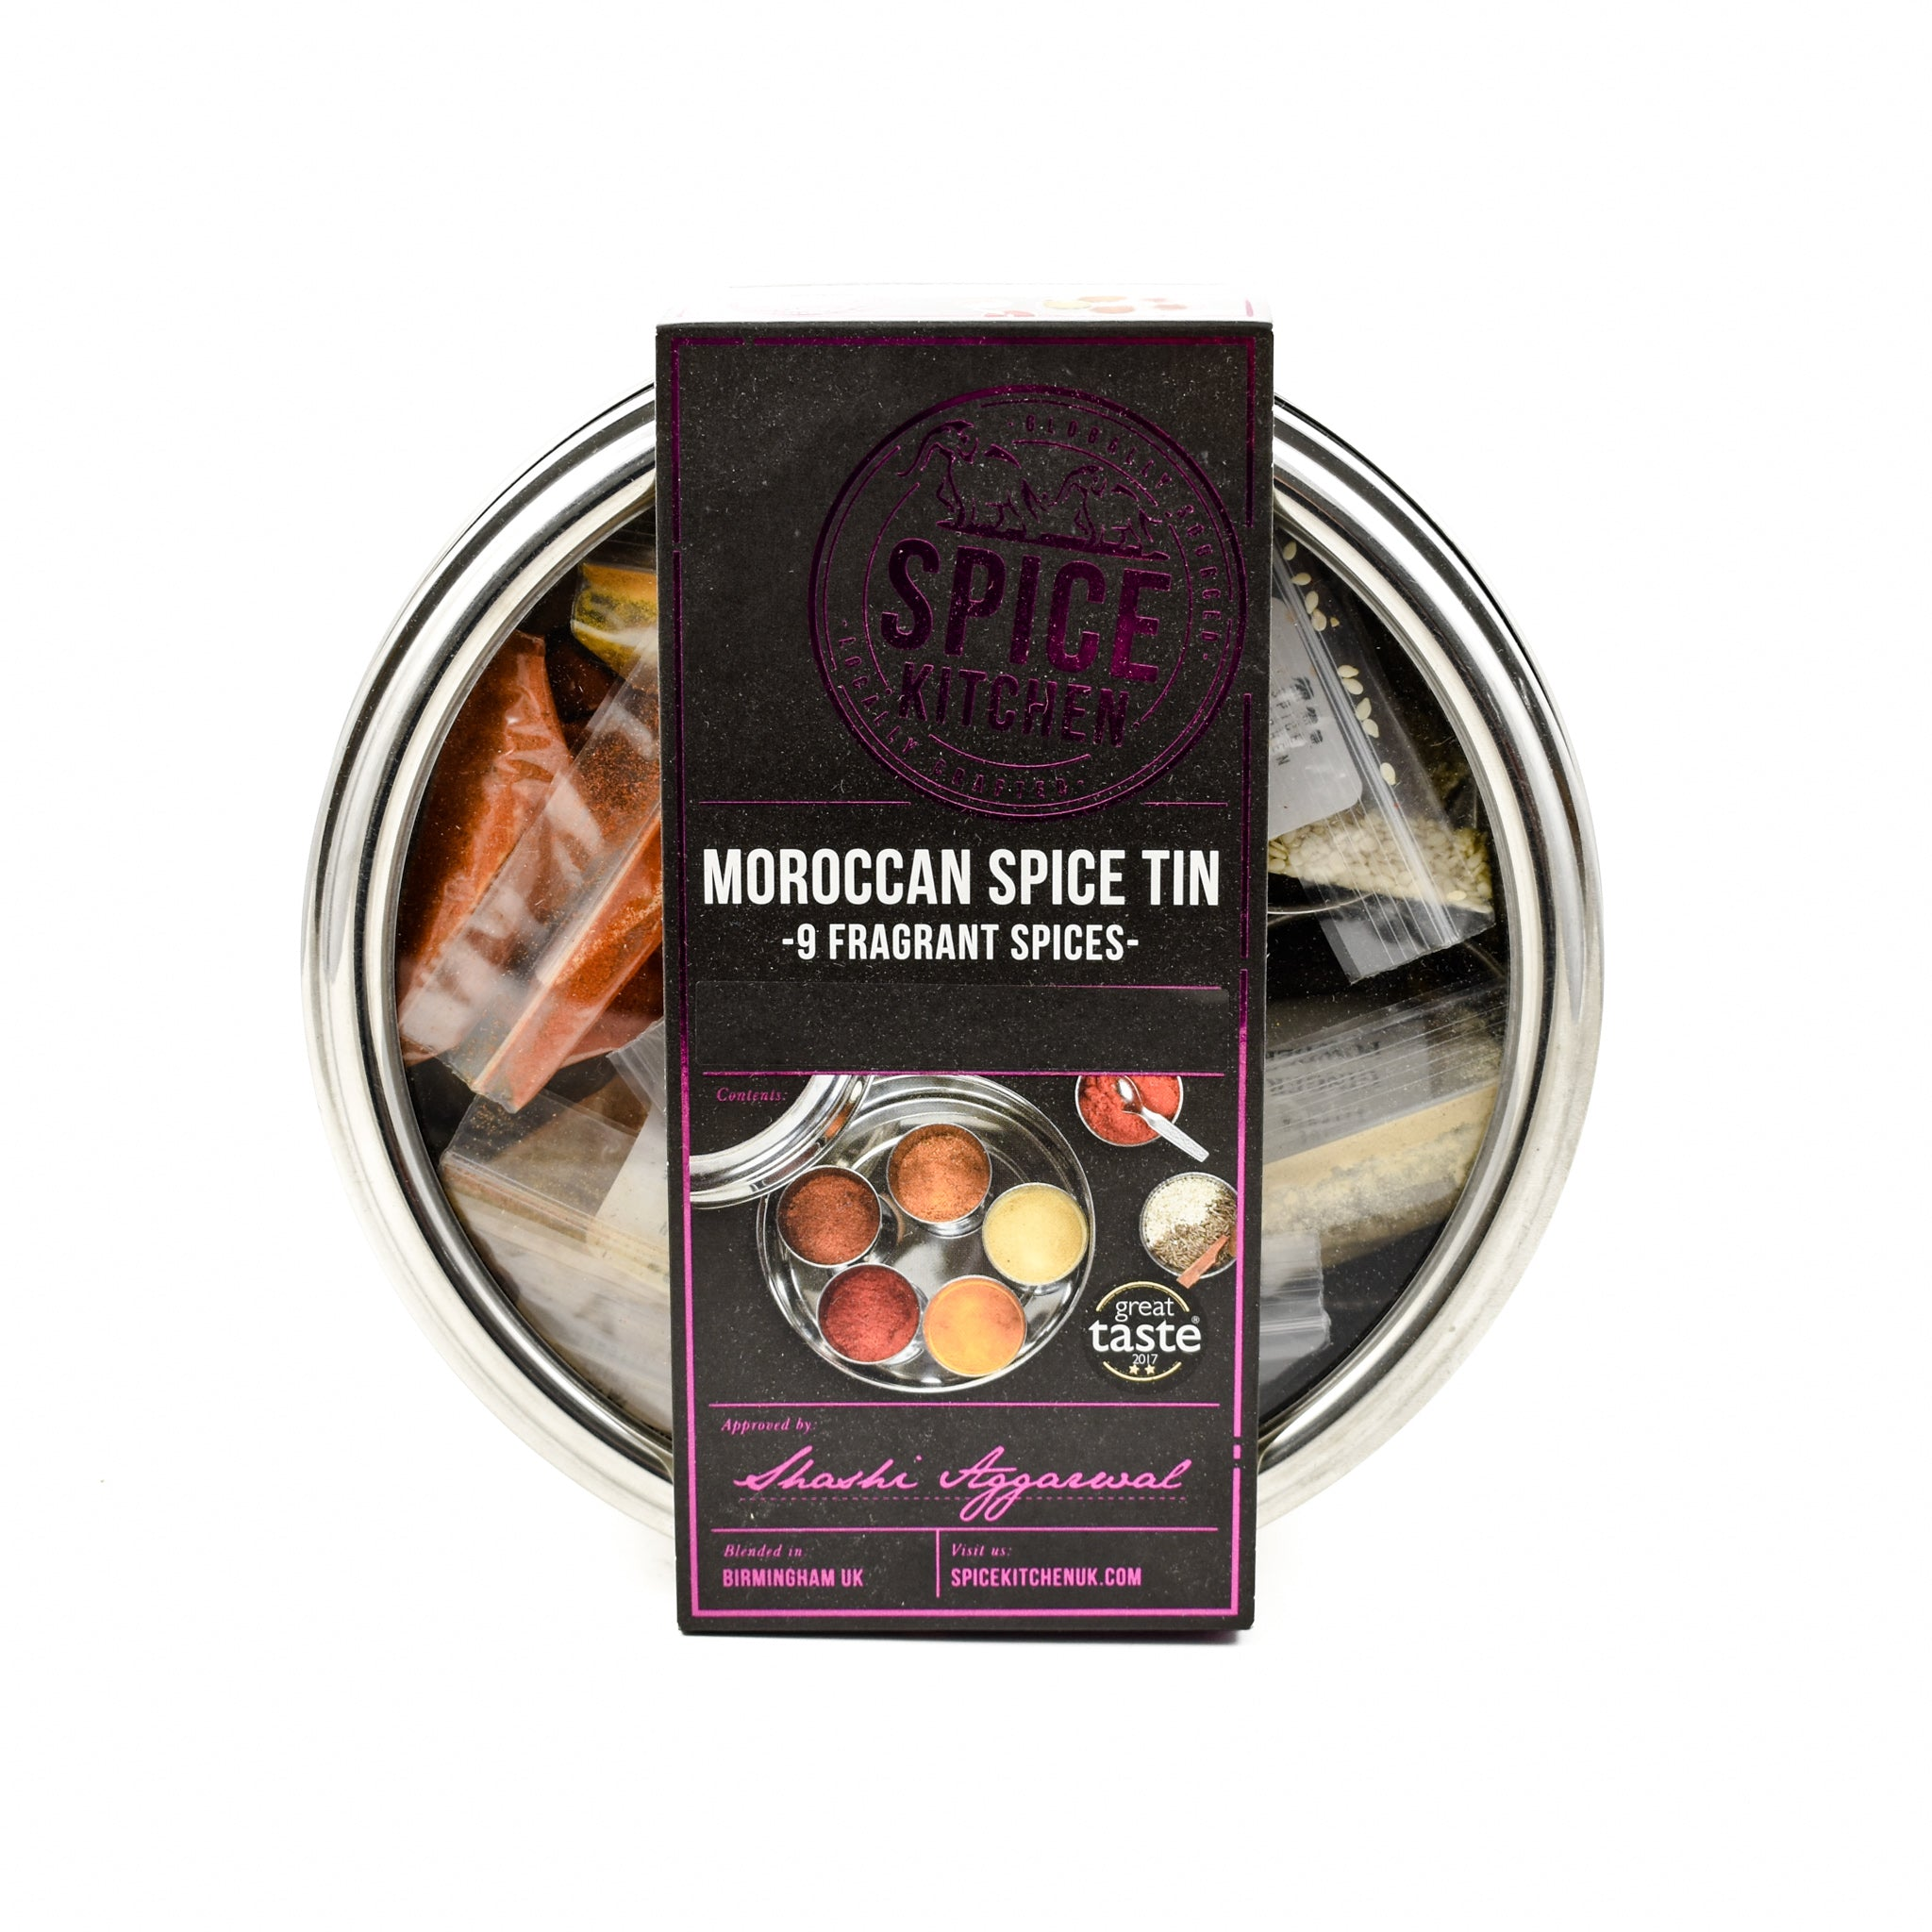 Spice Kitchen Moroccan Spice Tin